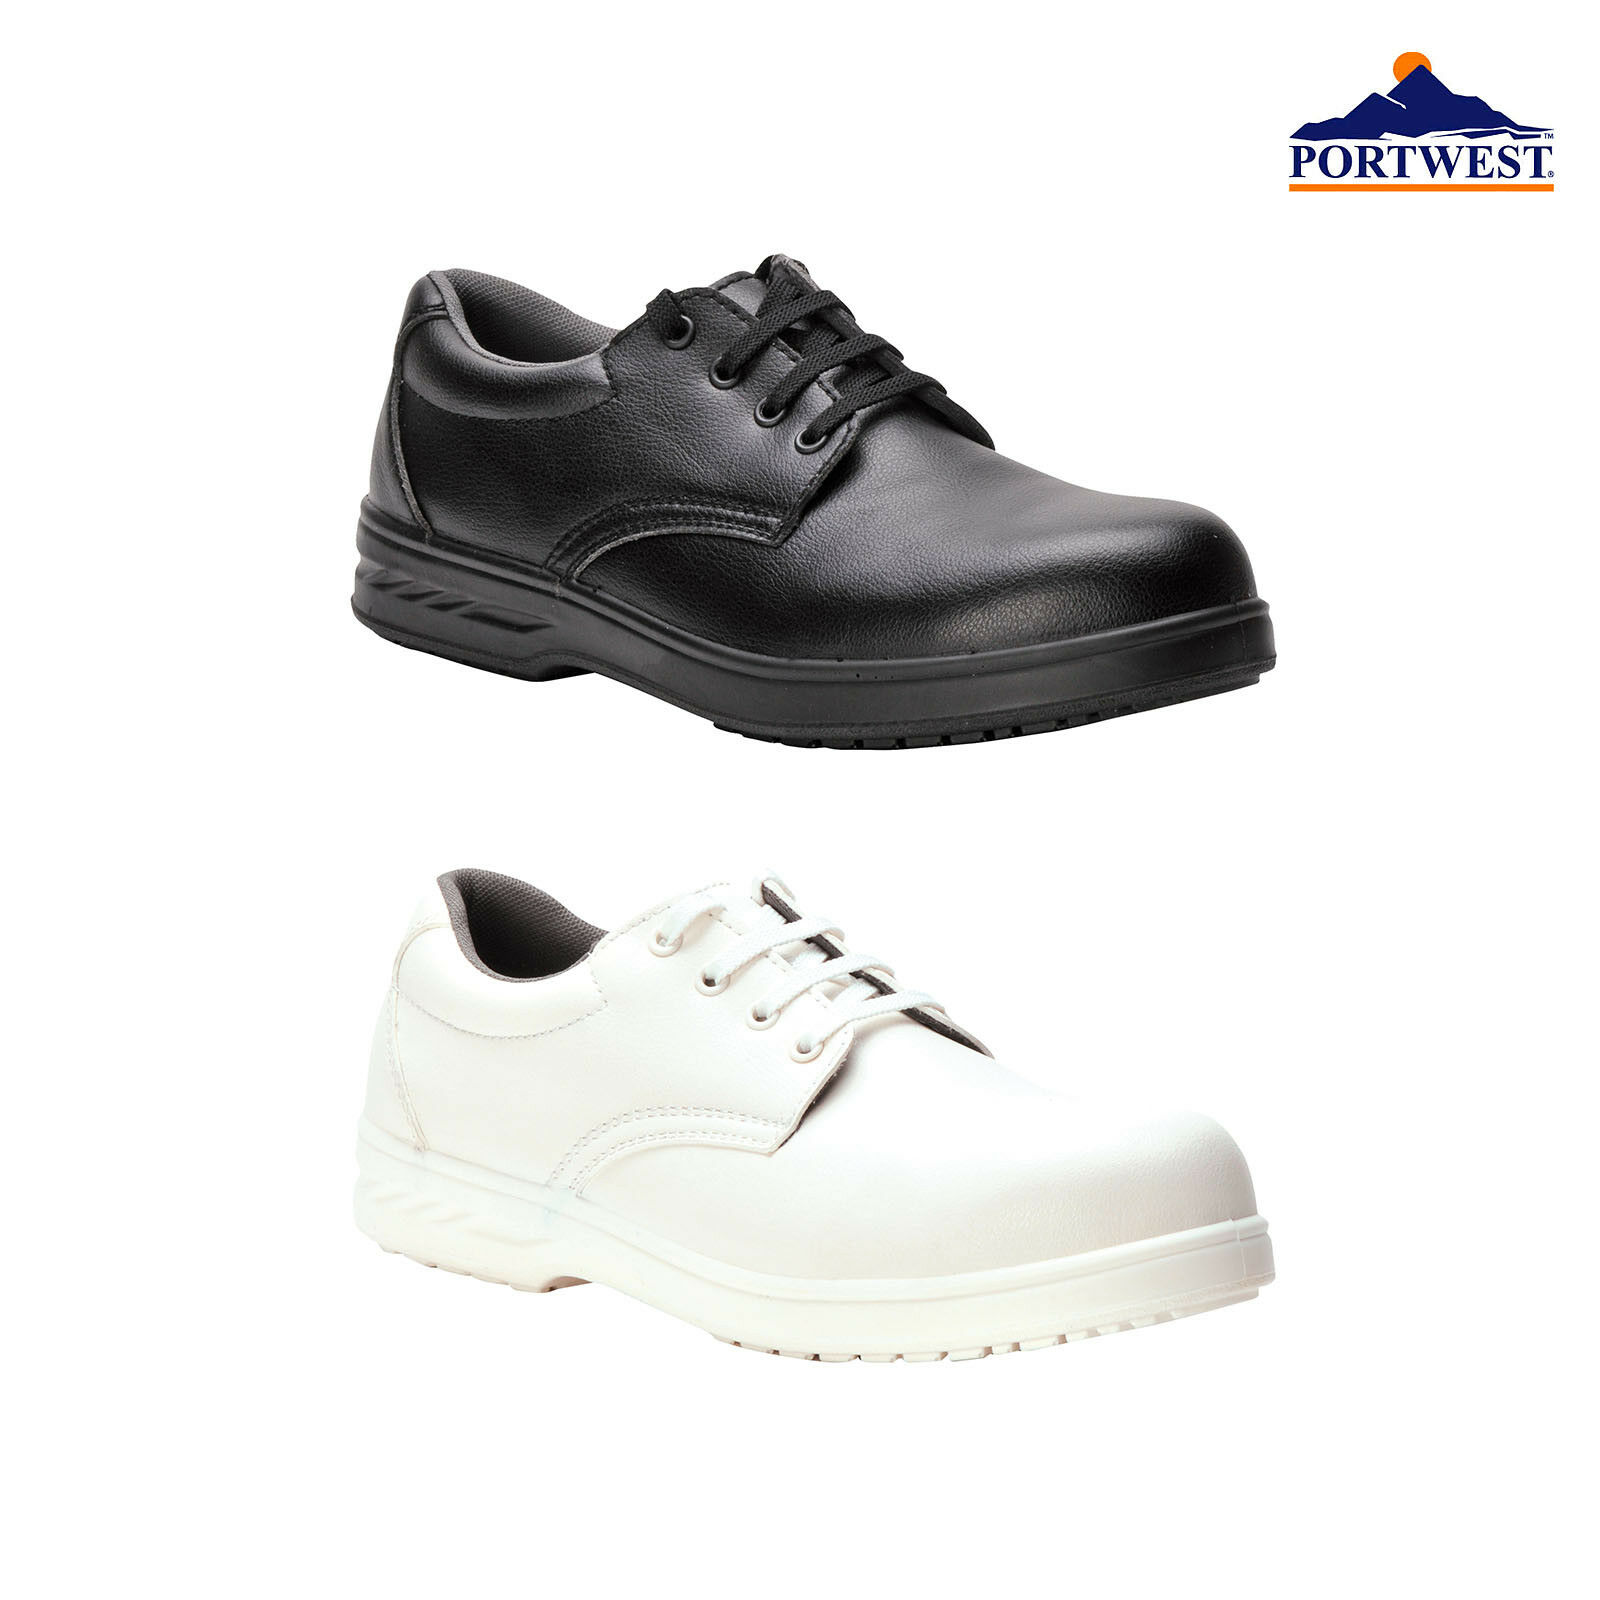 Portwest Steelite Laced Safety shoes FW80